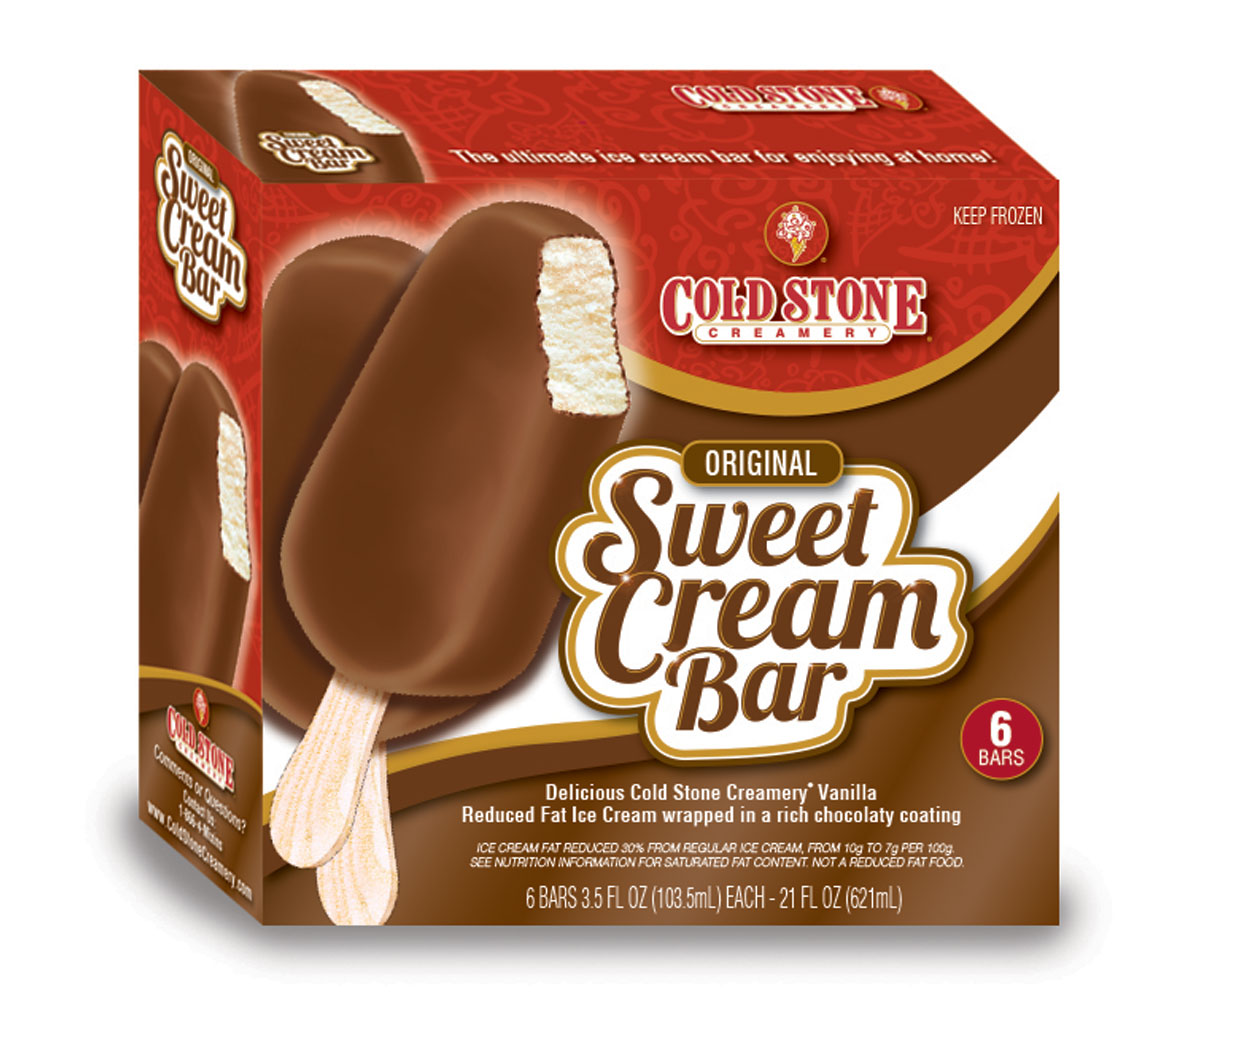 Original Sweet Cream Bars